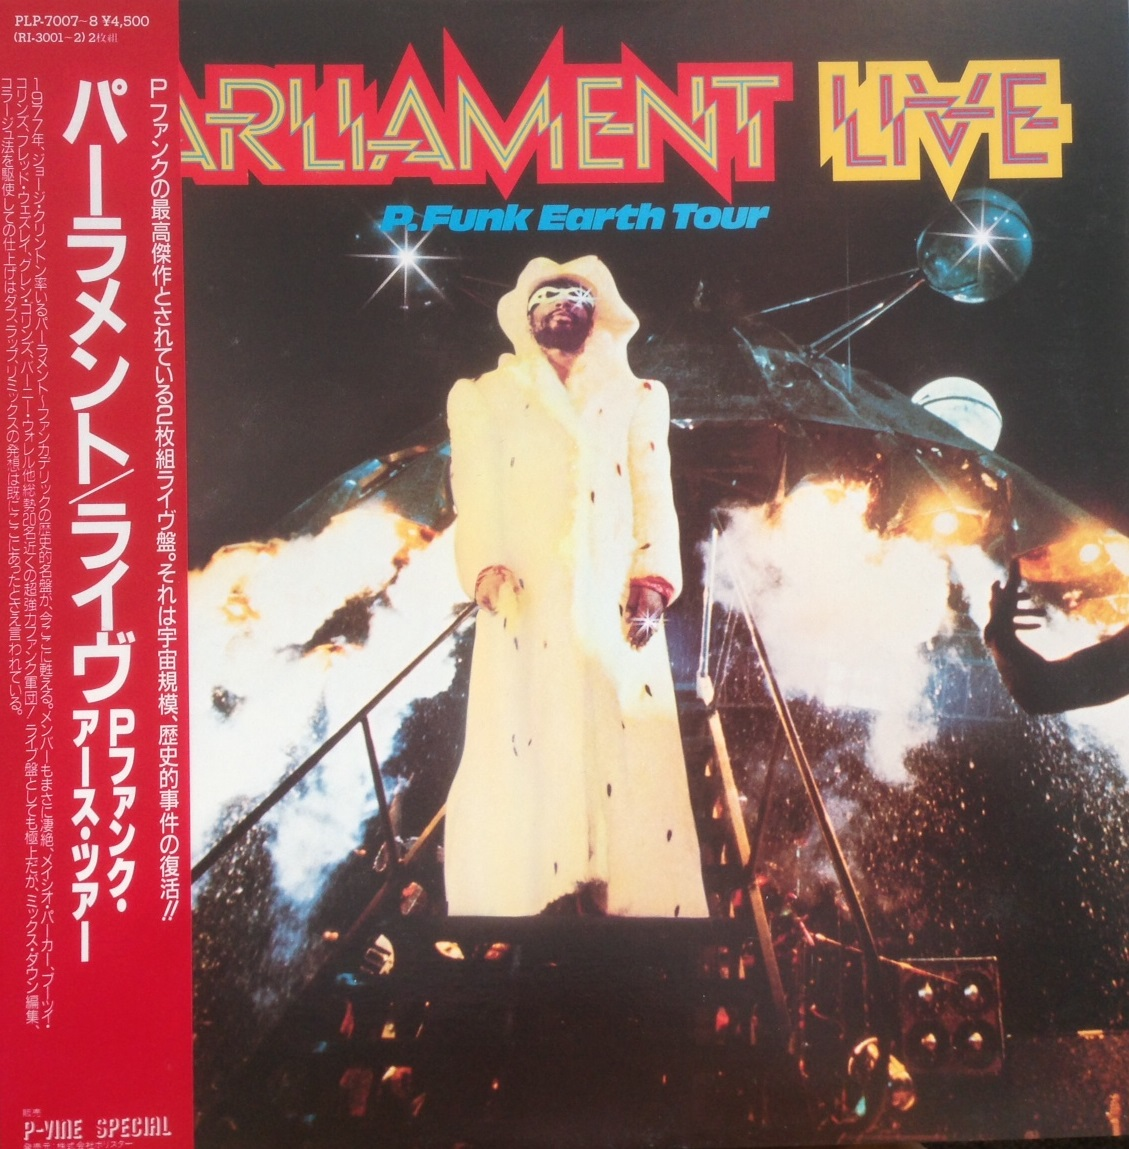 PARLIAMENT / LIVE P.FUNK EARTH TOUR